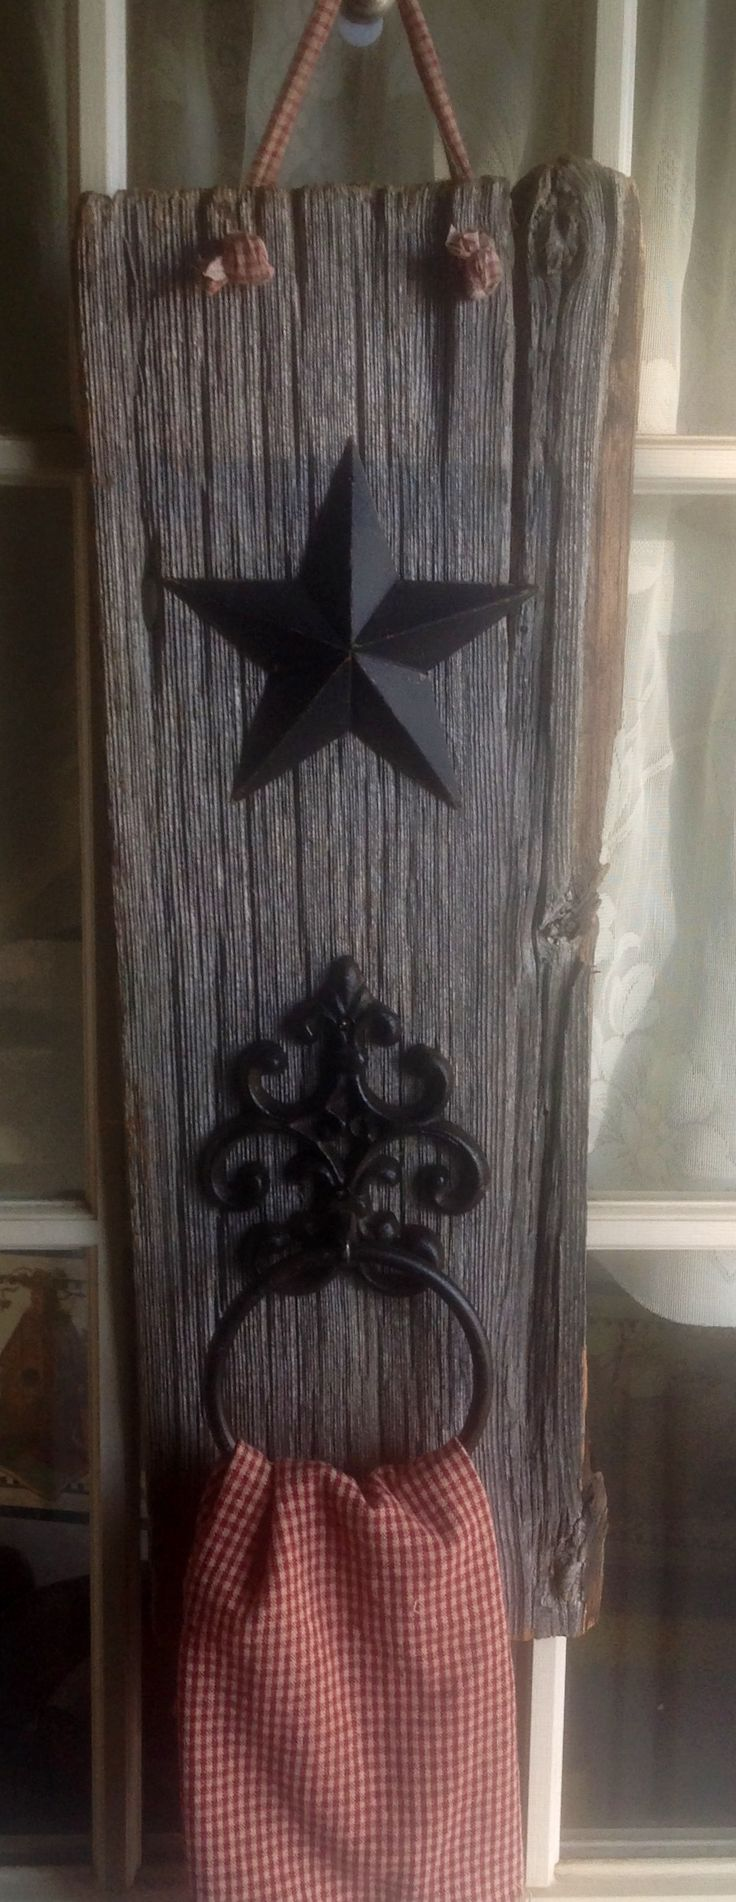 Barn wood towel holder. The Southern Living at Home towel holder would look great on this!